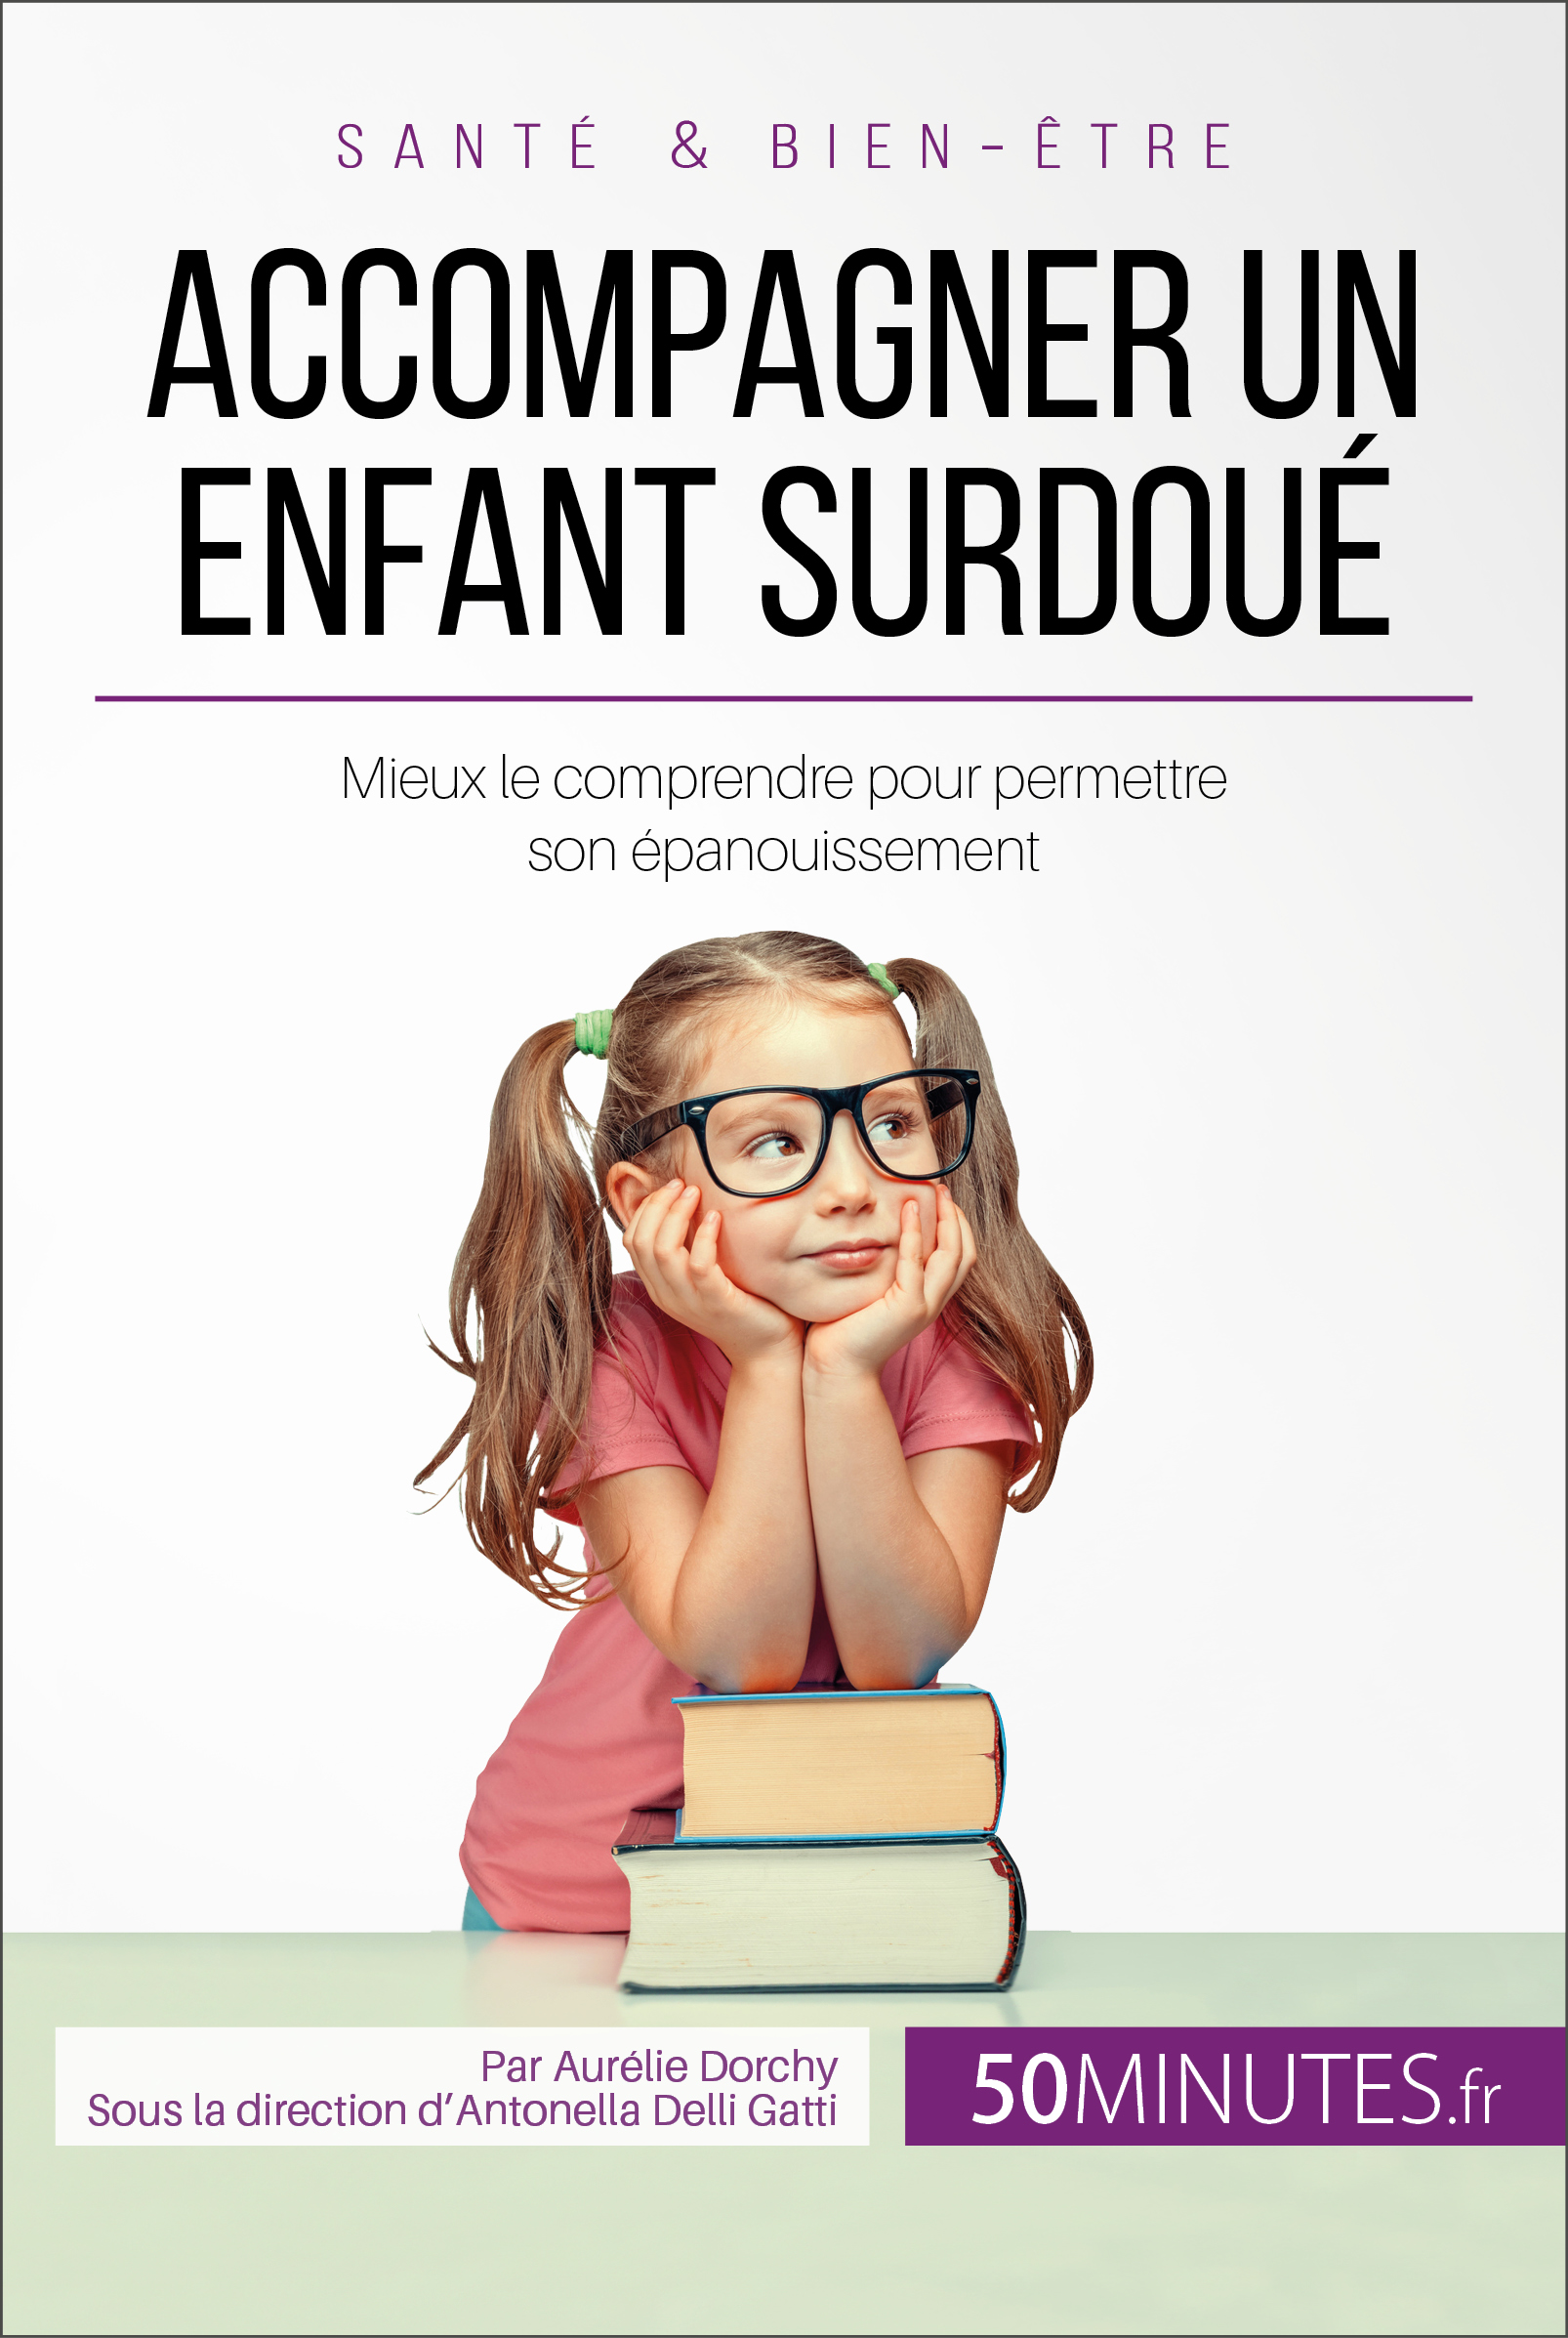 Accompagner un enfant surdoué